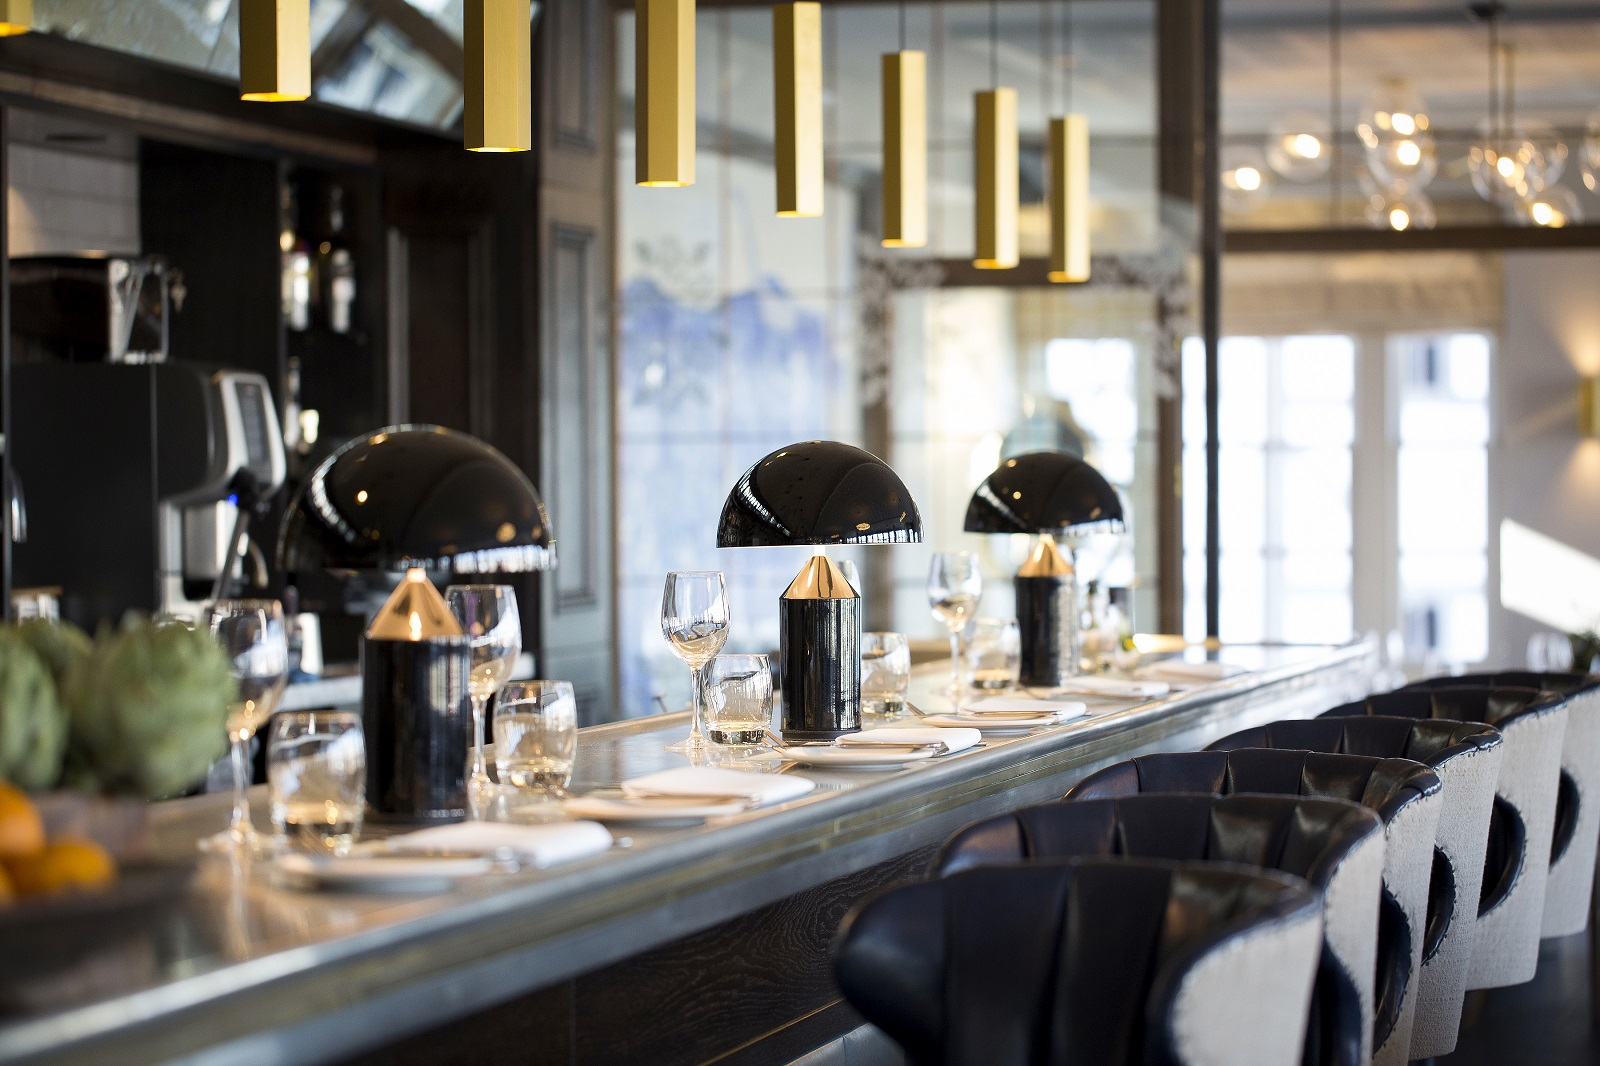 The swan london restaurant review